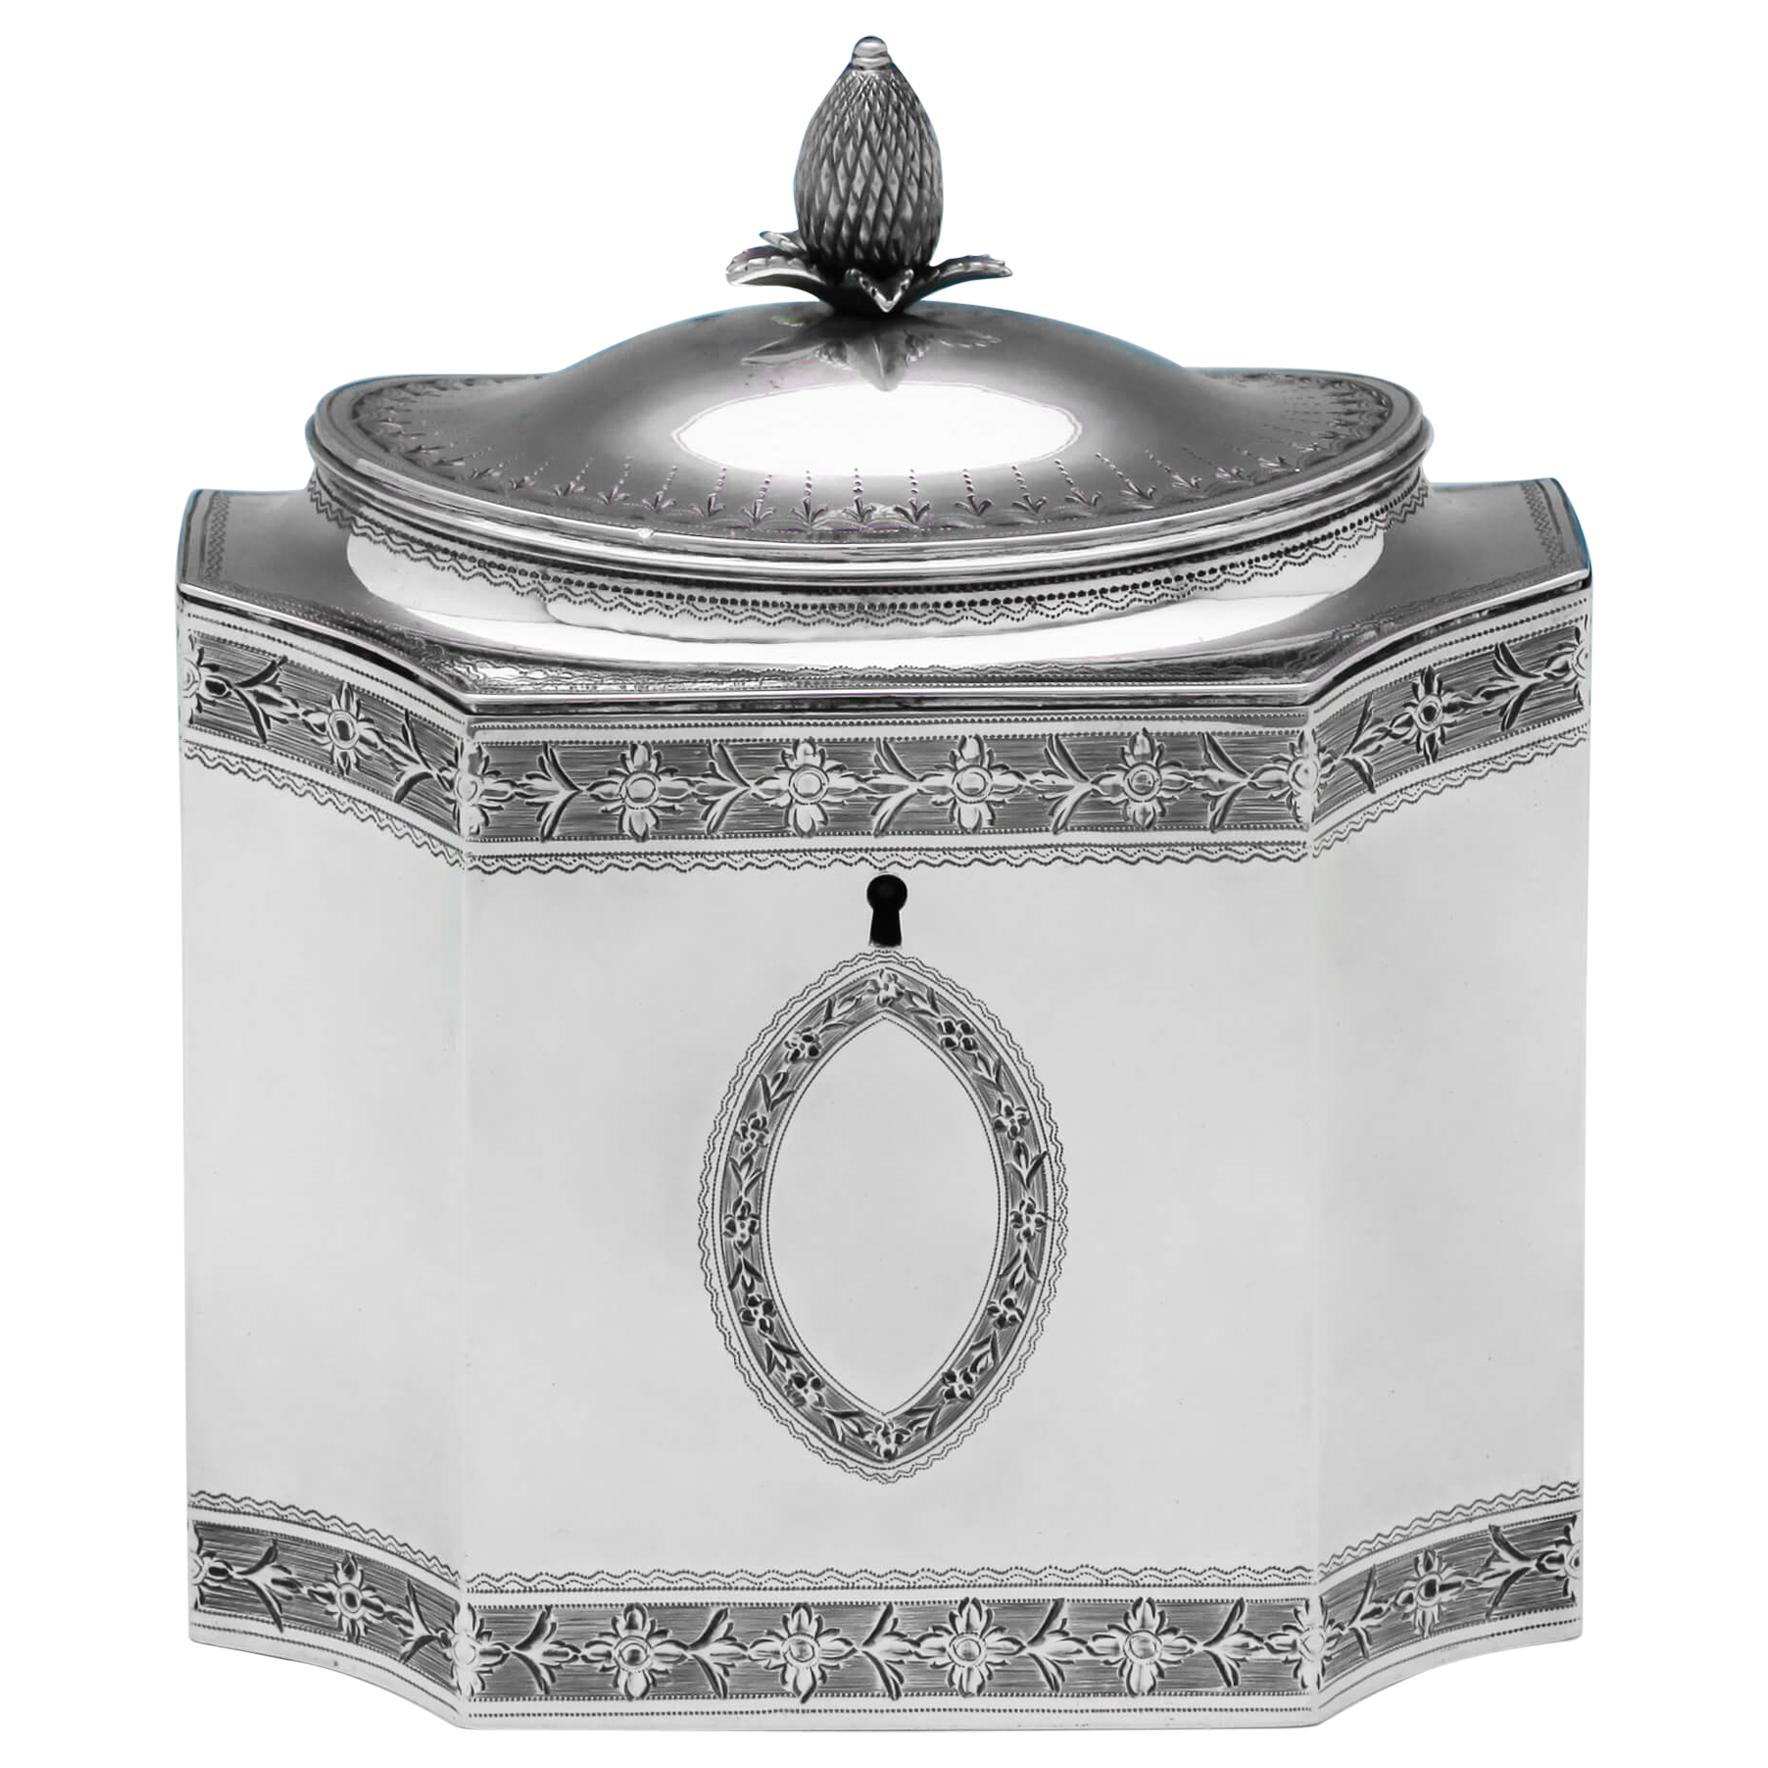 Neoclassical George III Antique Sterling Silver Tea Caddy by John Robins in 1790